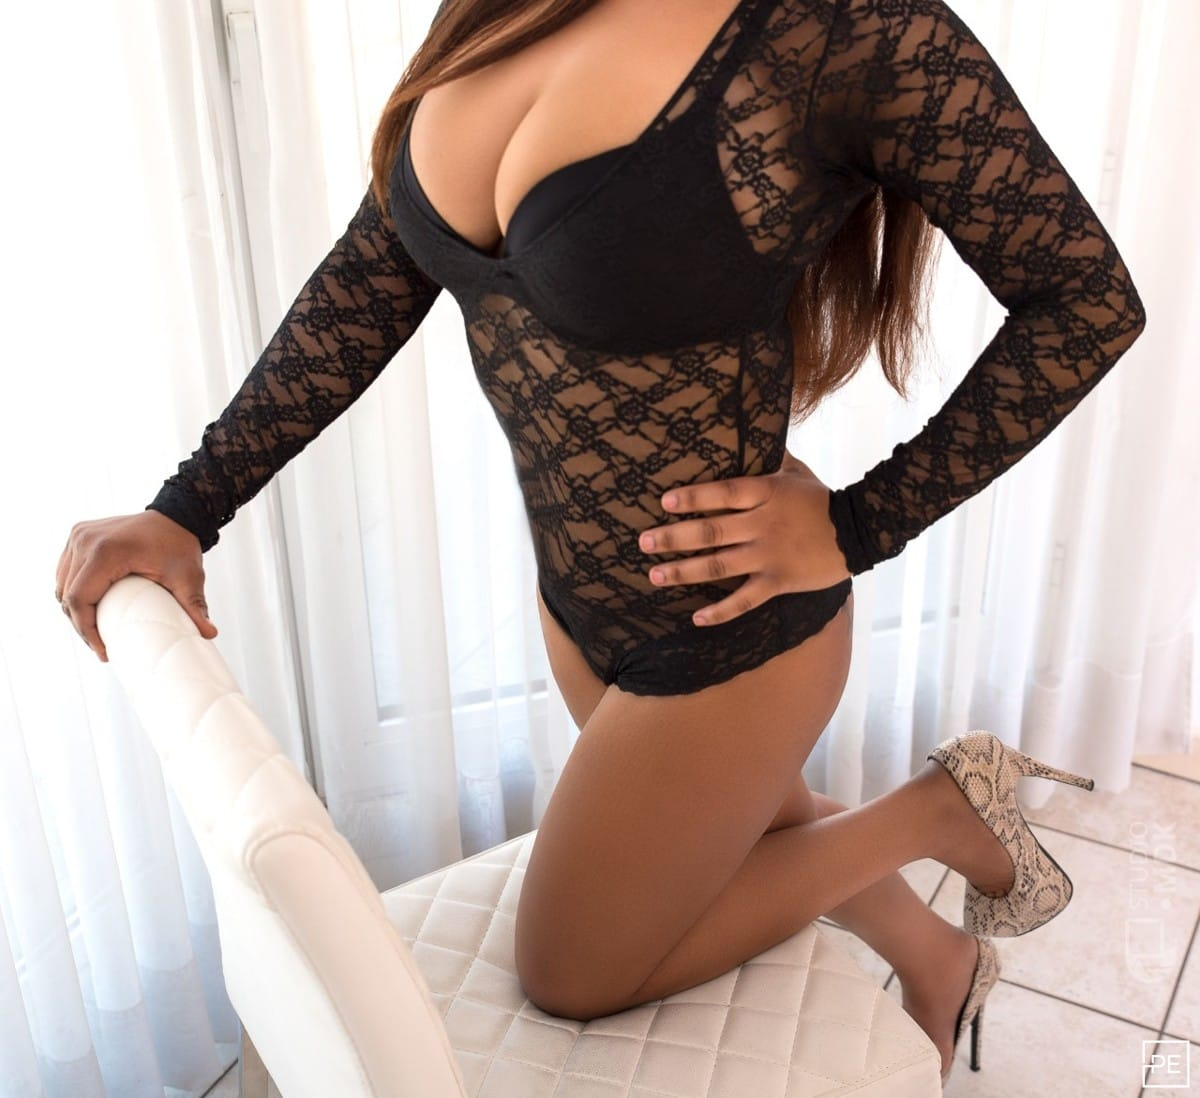 body to body massage nederland sex dames